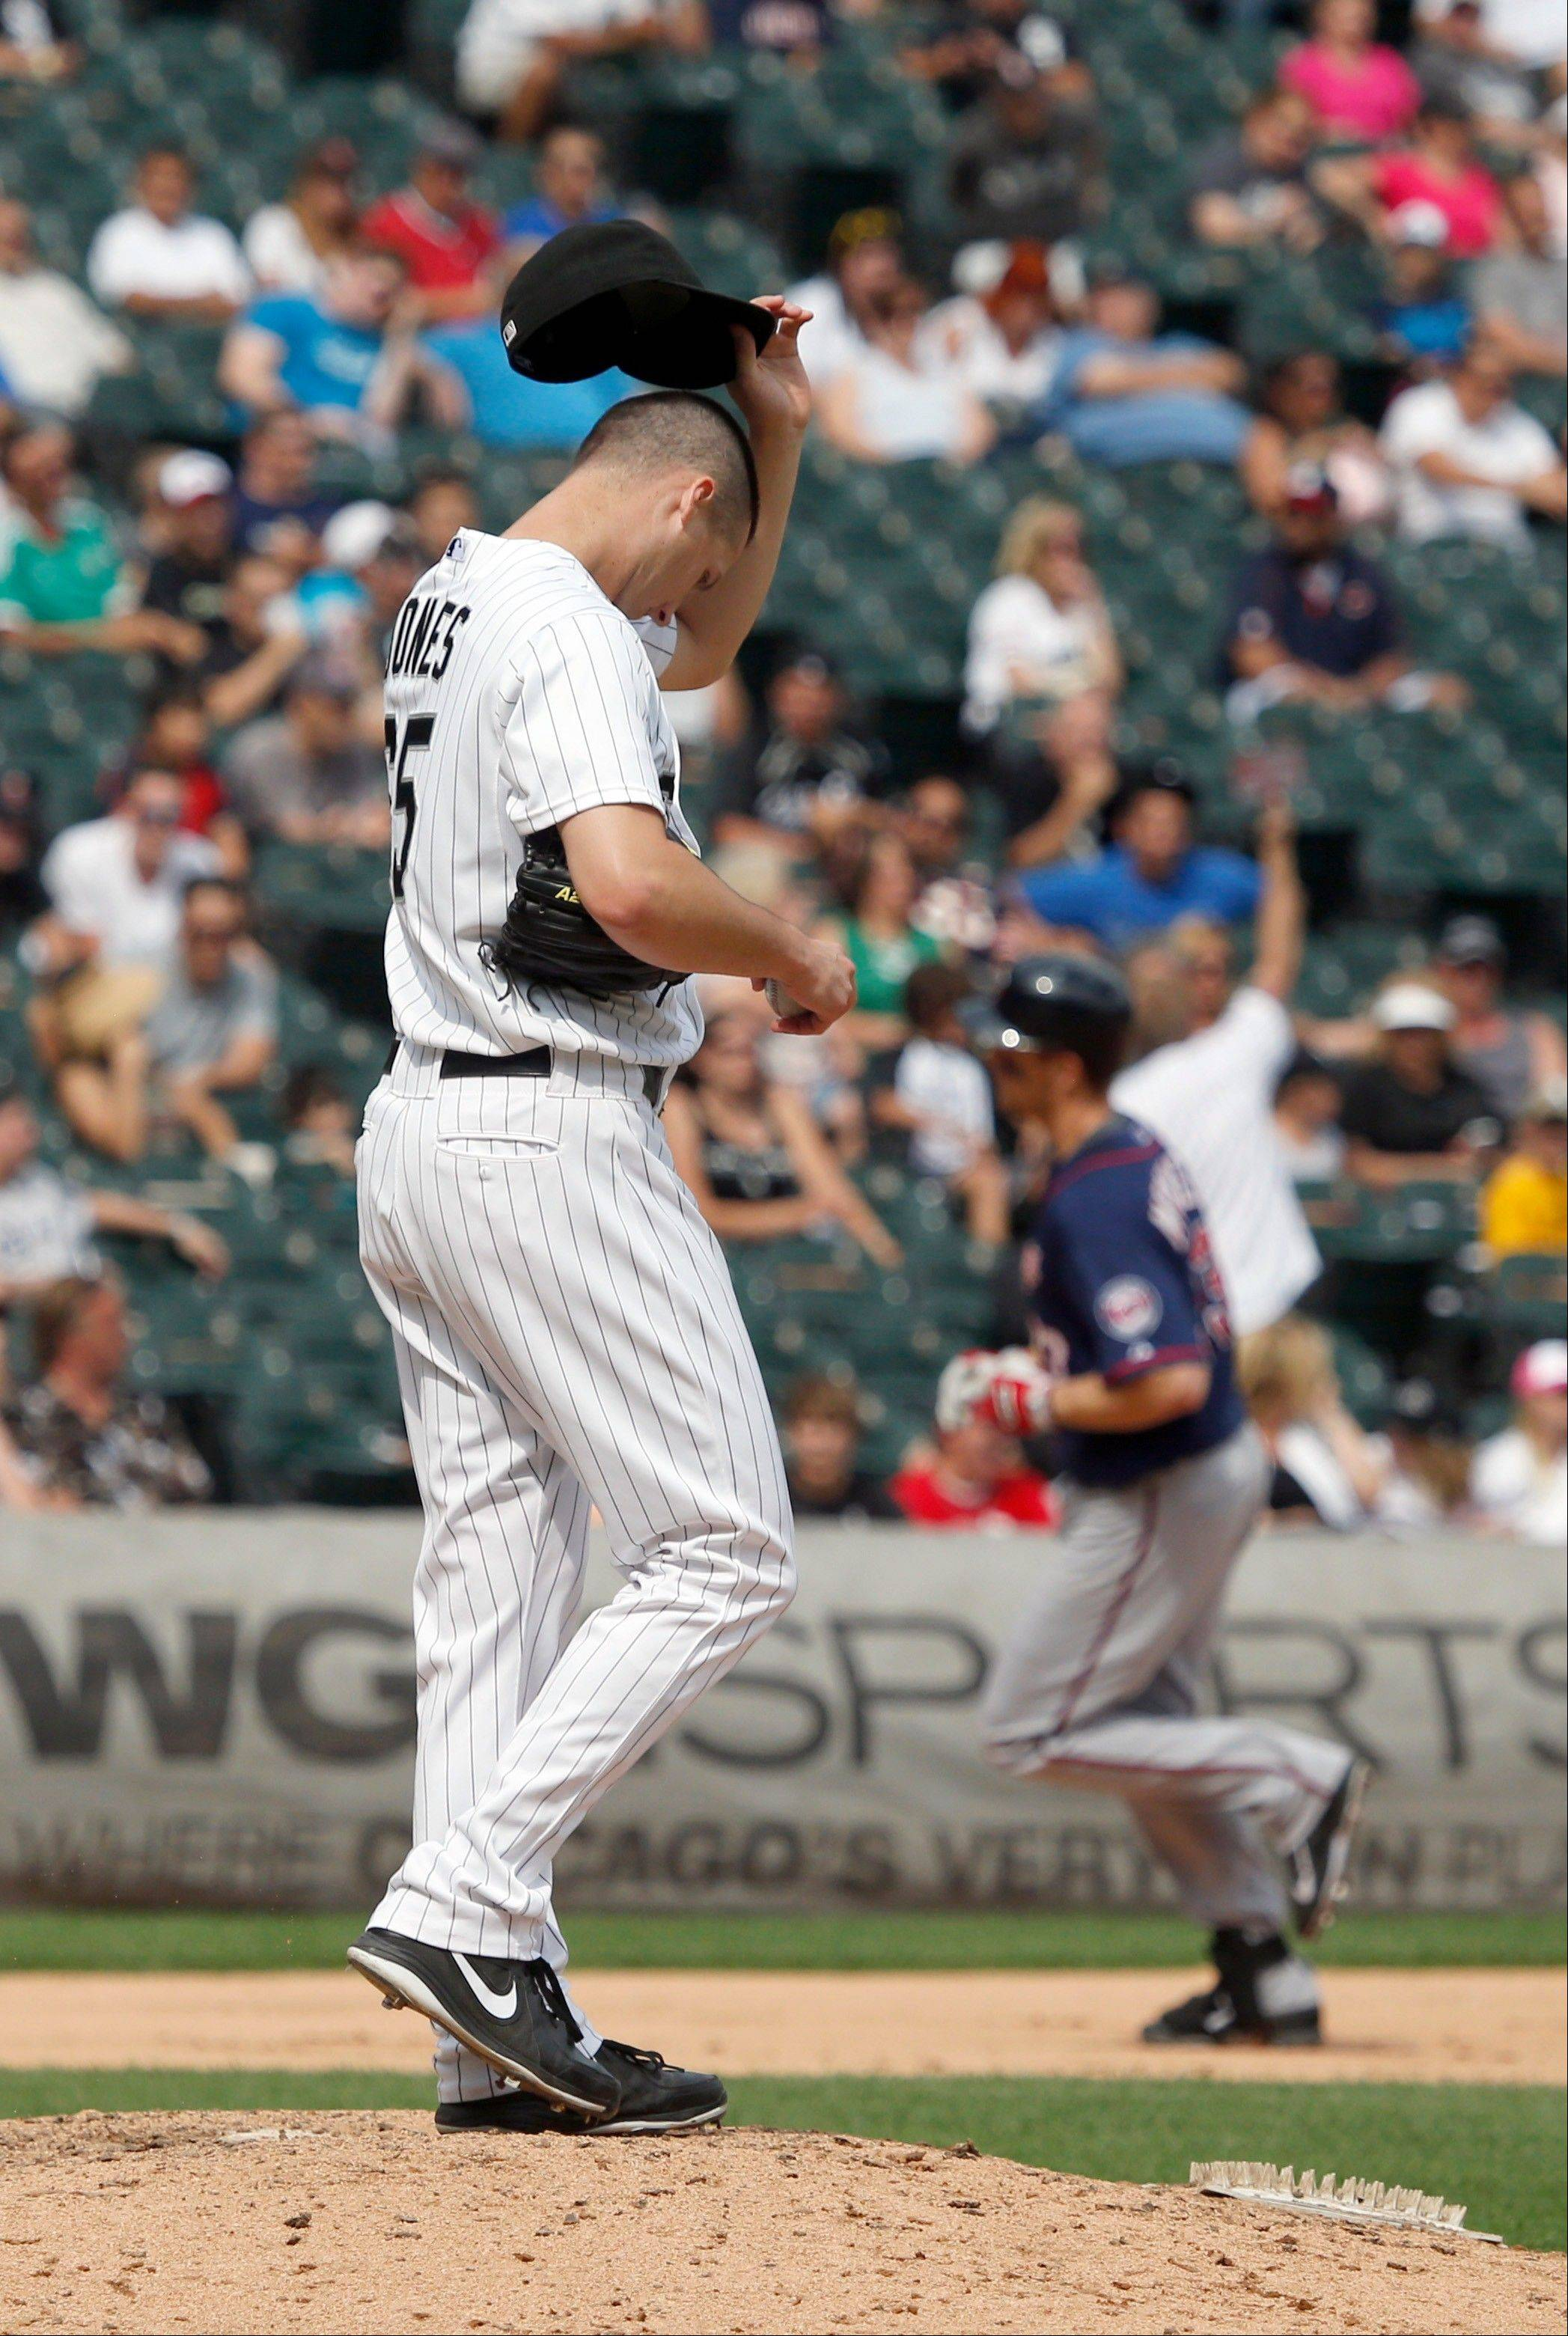 Chicago White Sox relief pitcher Nate Jones, left, wipes his face after giving up a grand slam to Minnesota Twins' Justin Morneau, rear right, during the seventh inning of a baseball game Friday, Aug. 9, 2013, in Chicago. Joe Mauer, Clete Thomas, and Pedro Florimon also scored on the play. (AP Photo/Charles Rex Arbogast)